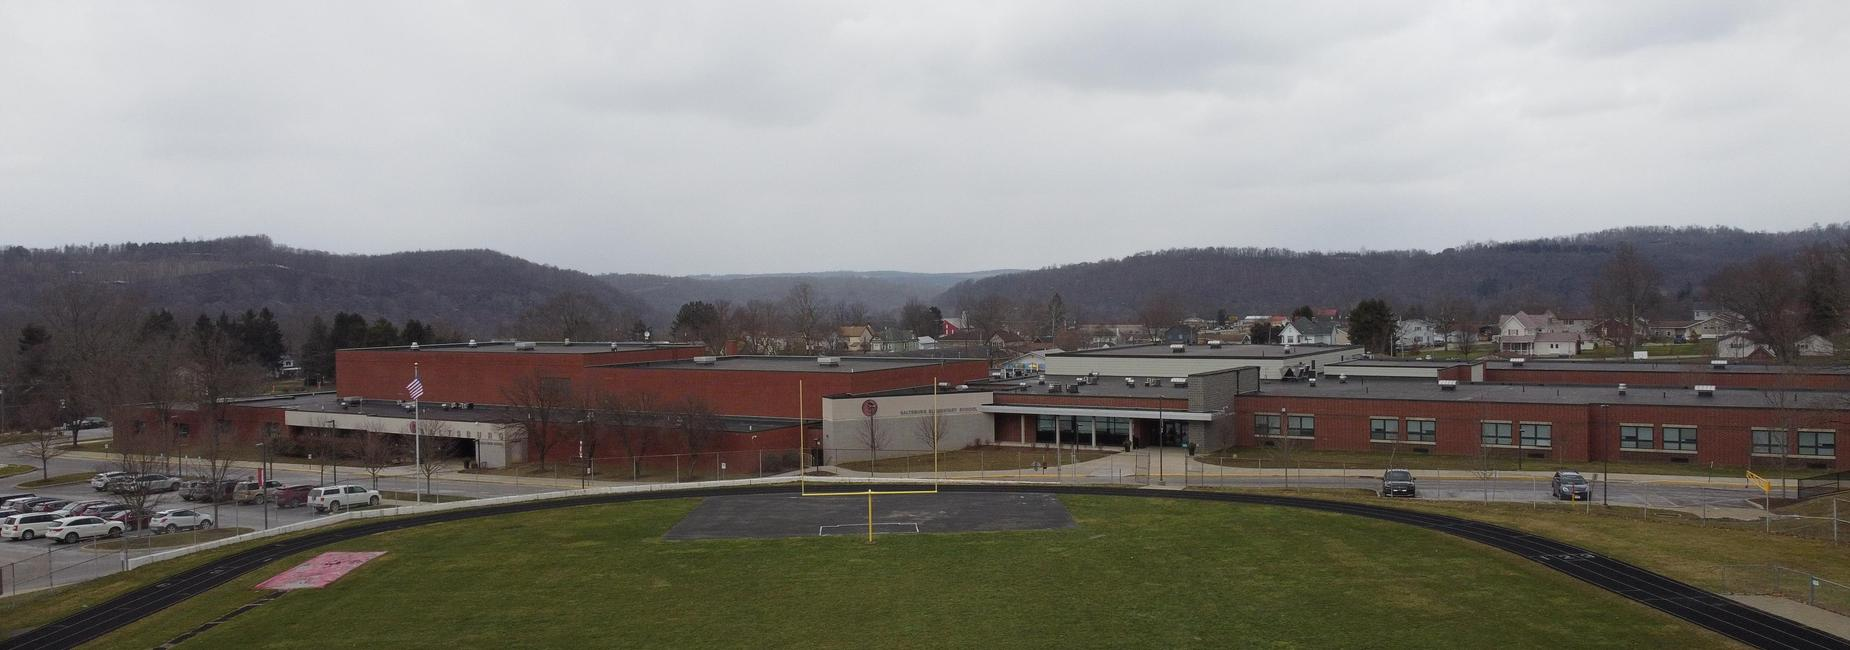 Saltsburg Middle High School Entrance 2